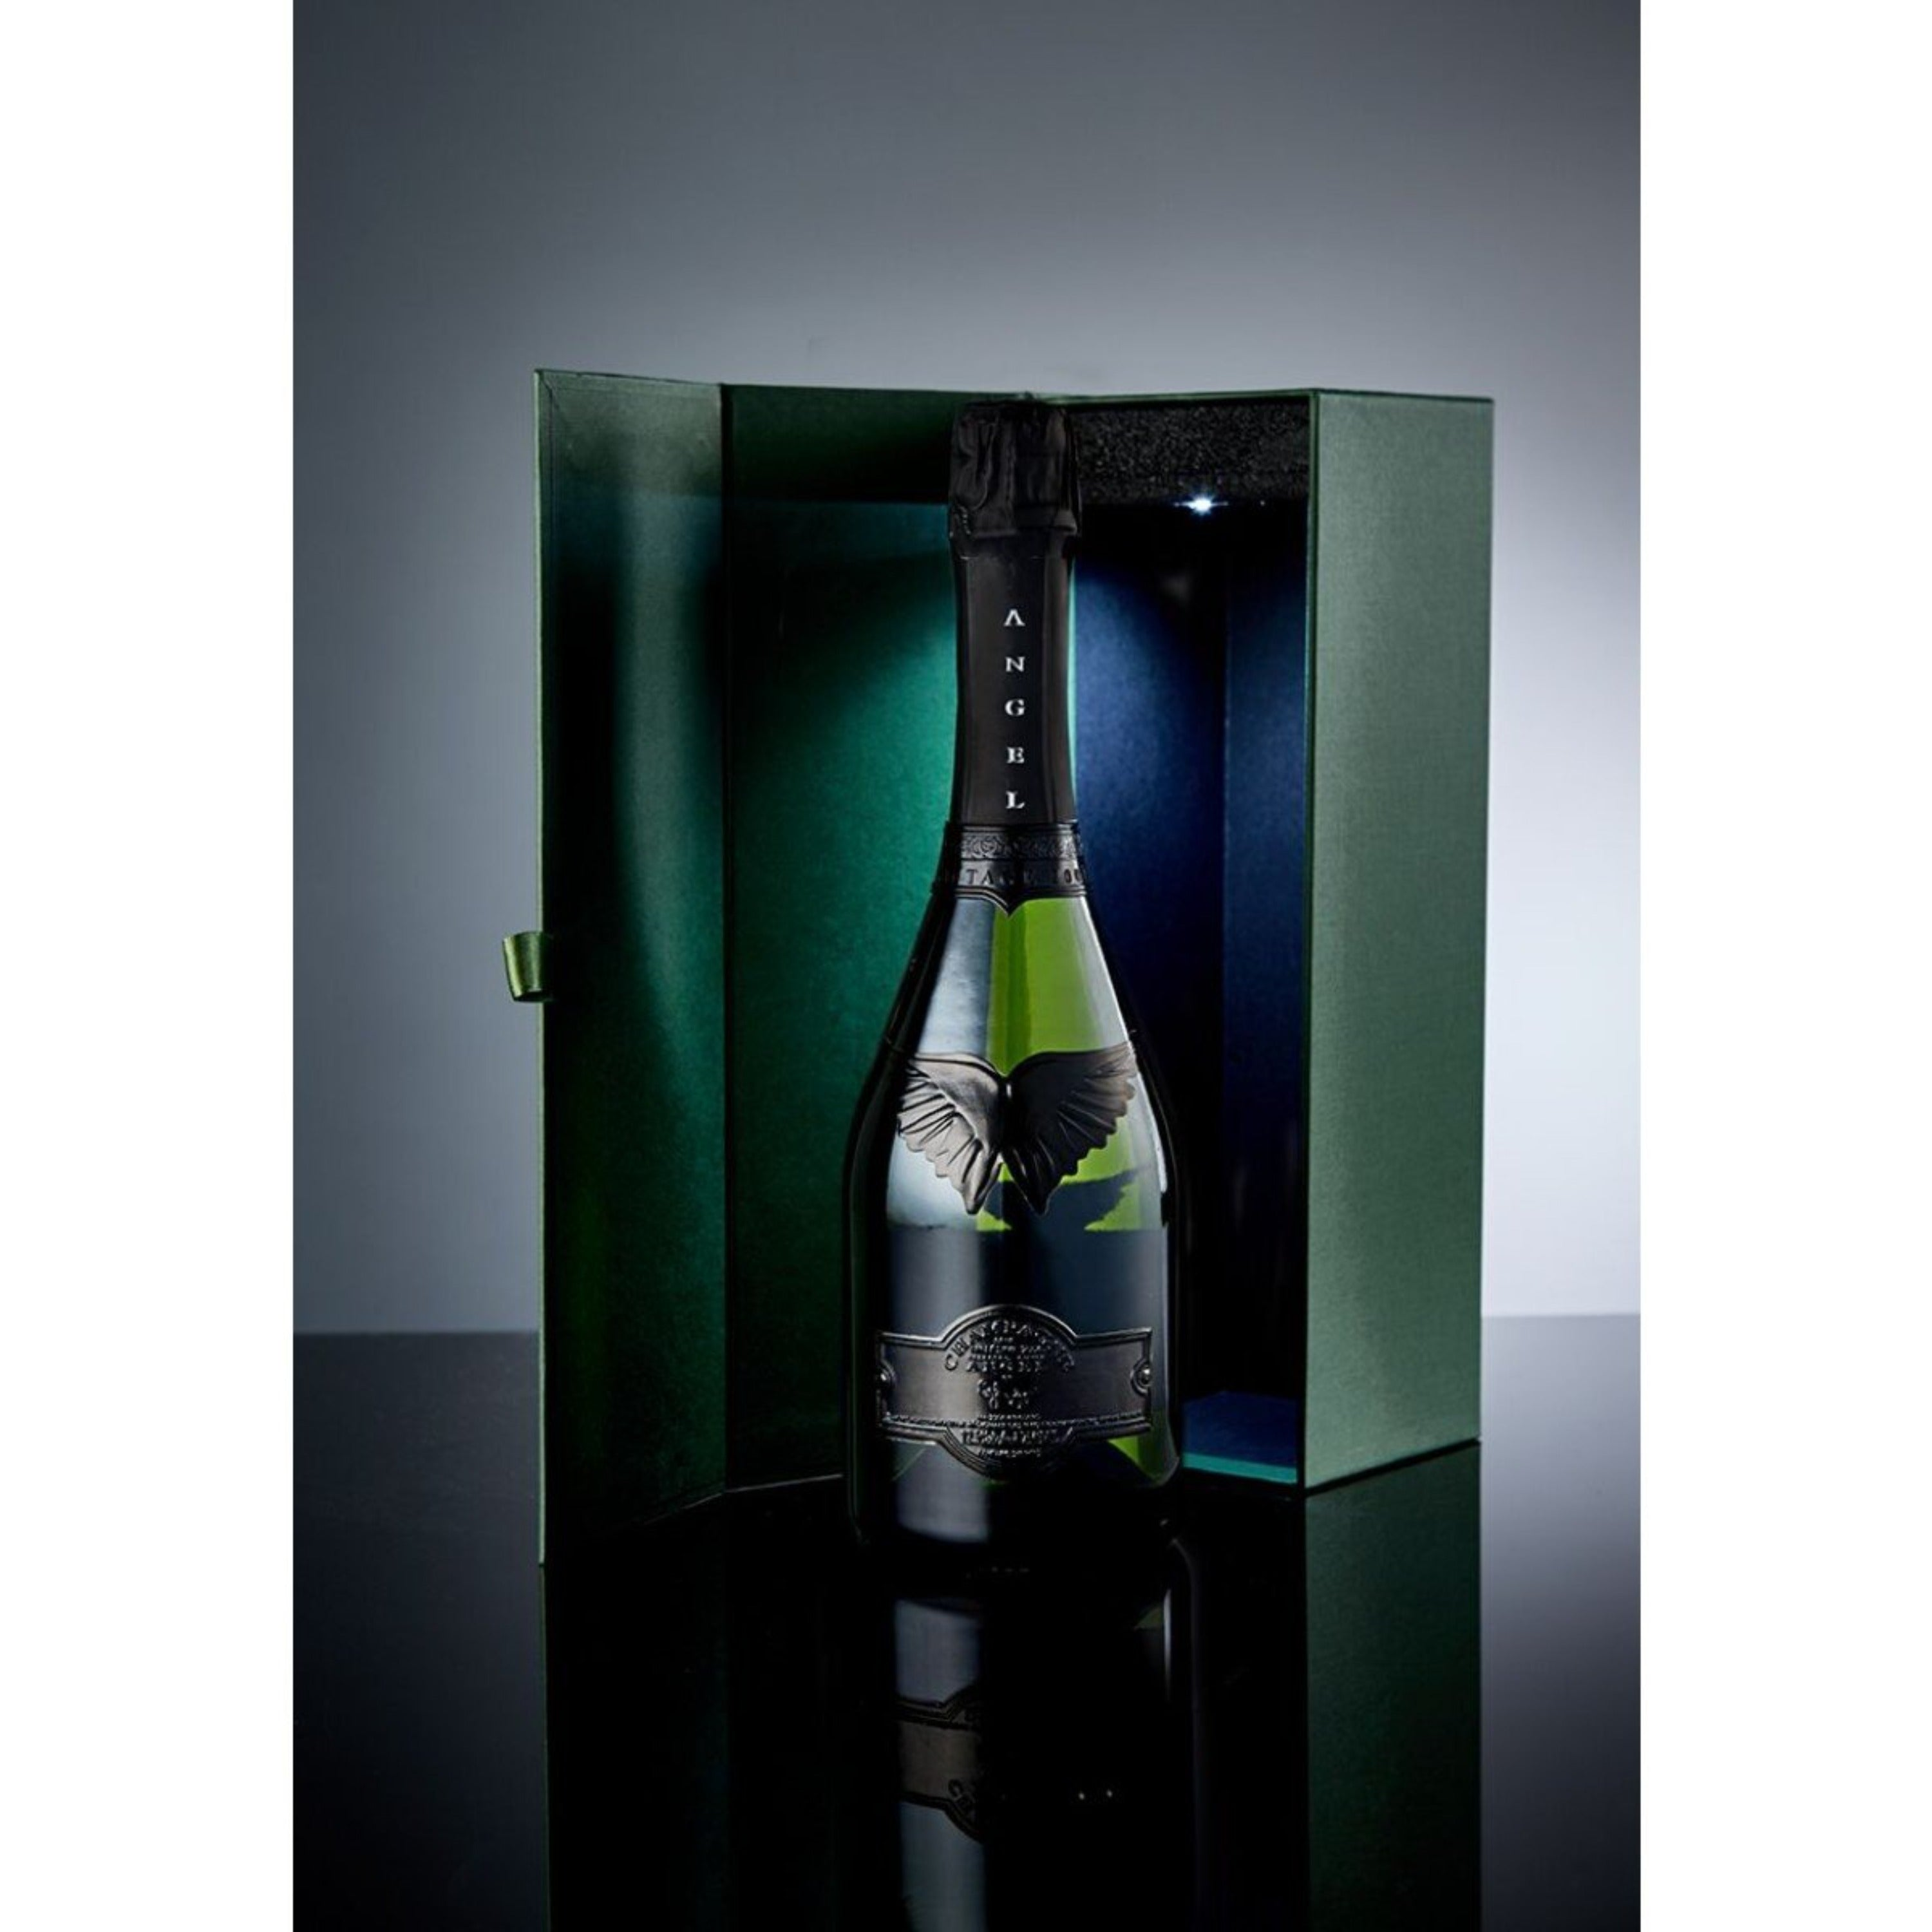 Angel Champagne Vintage 2005 Brut with box